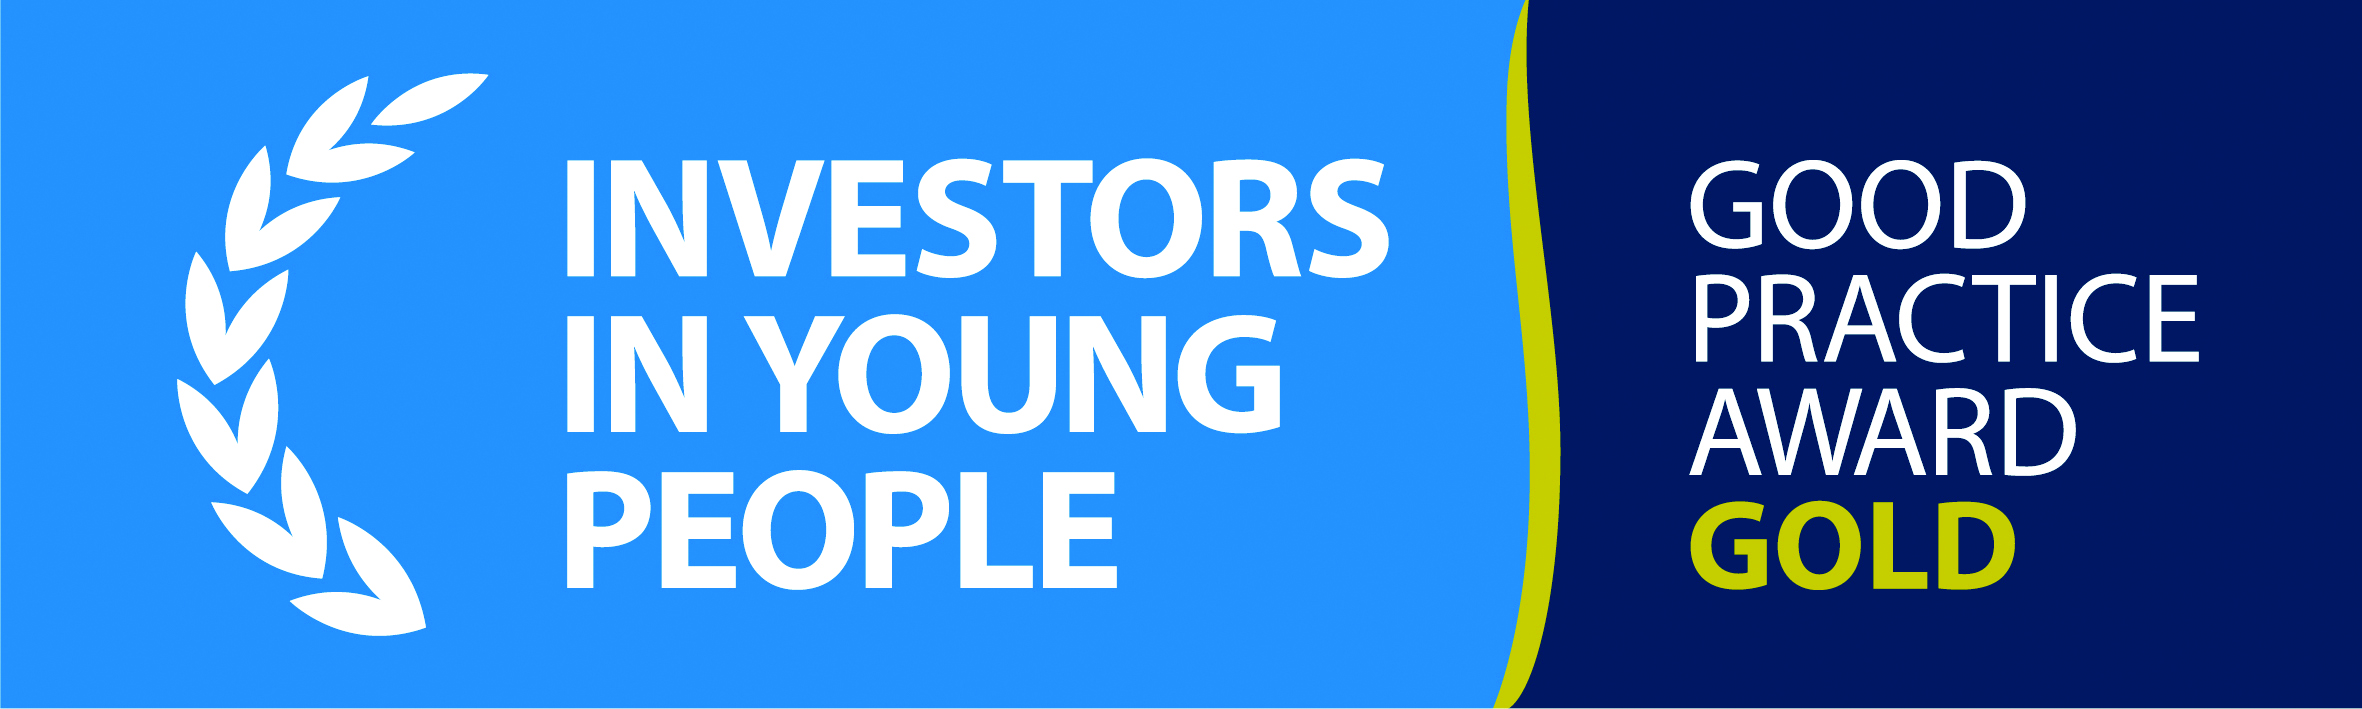 Investors in Young People Gold